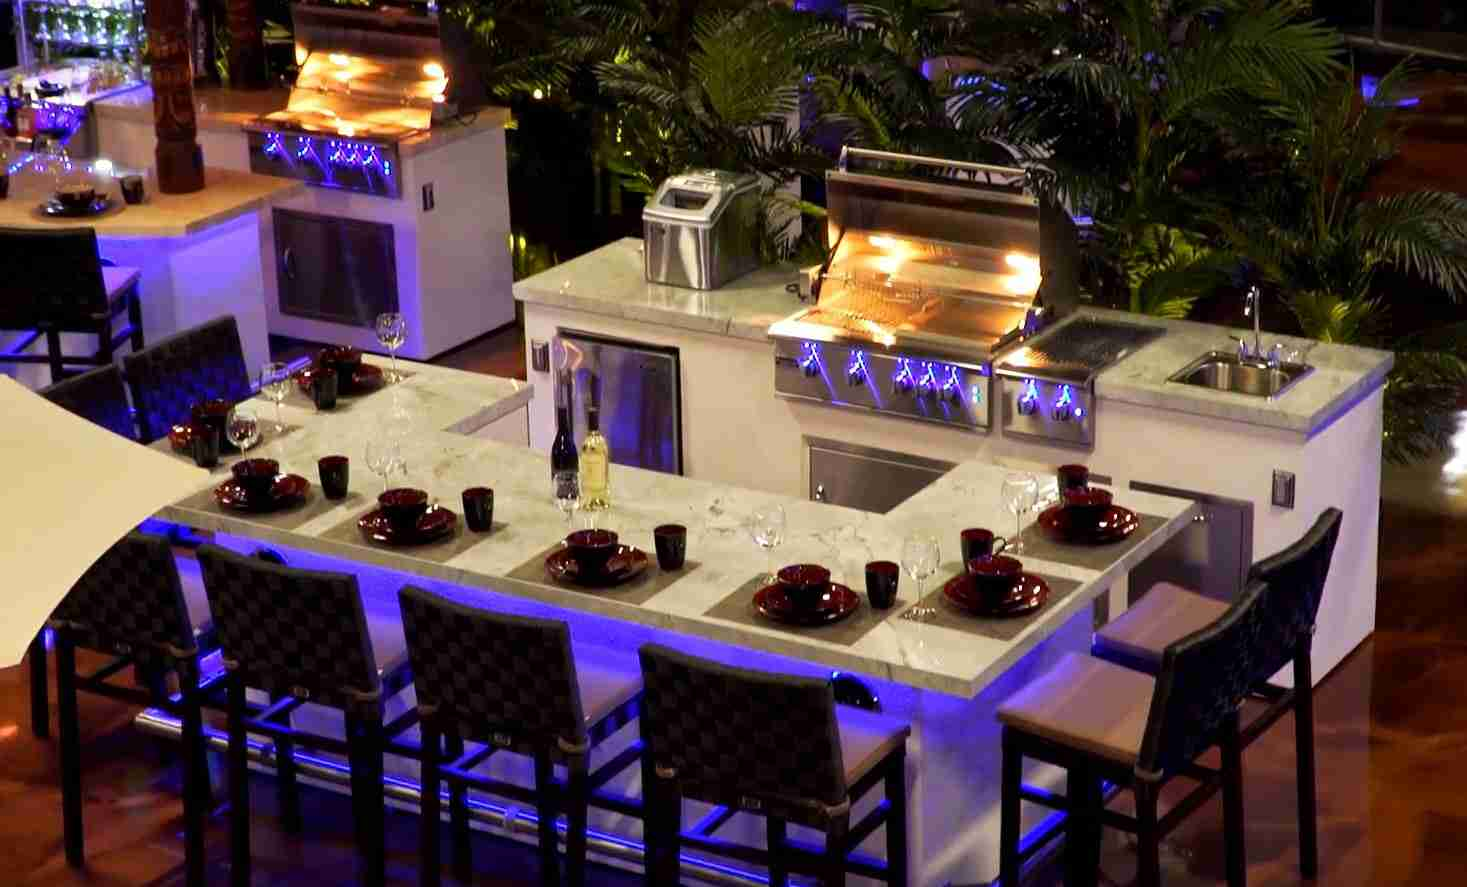 Outdoor Kitchens in Orlando, FL – Paradise Grills